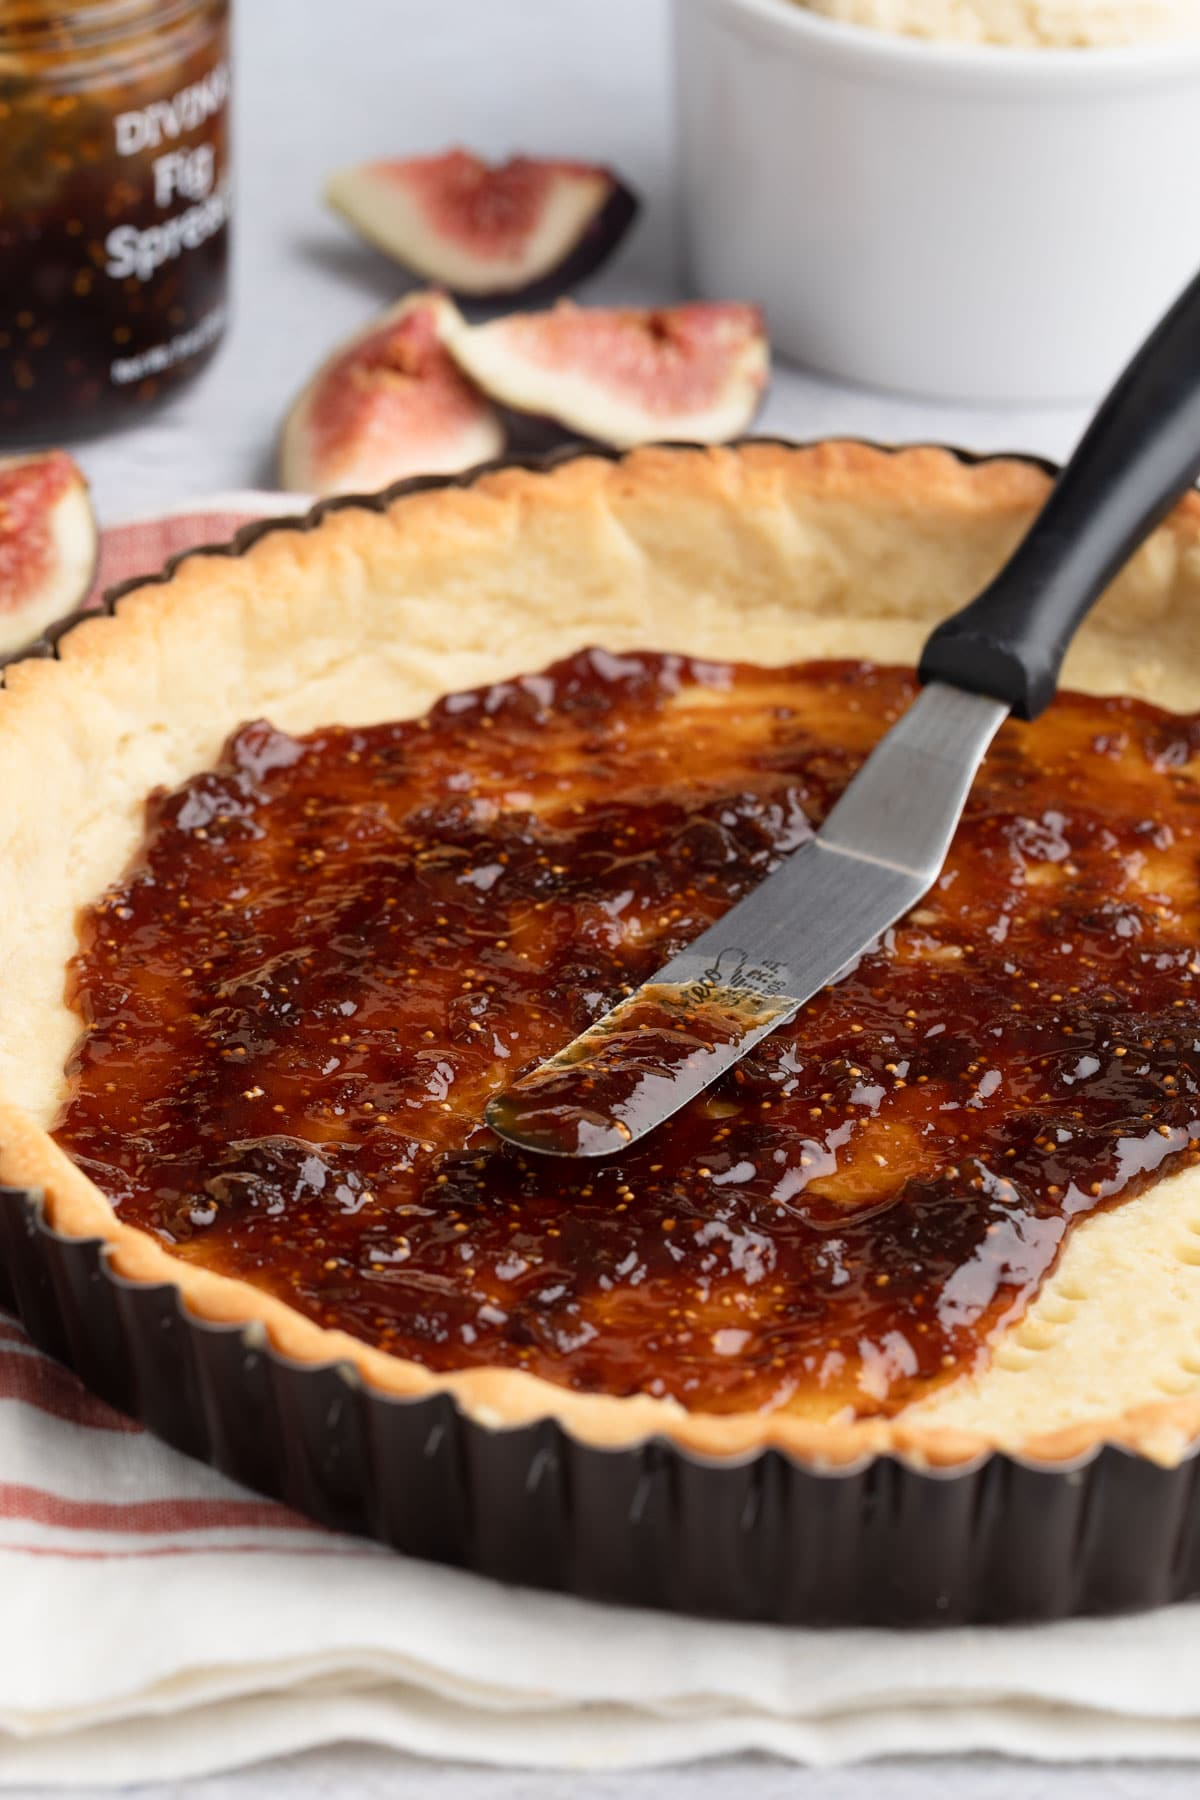 fig spread in a par-baked tart shell with a metal spreader